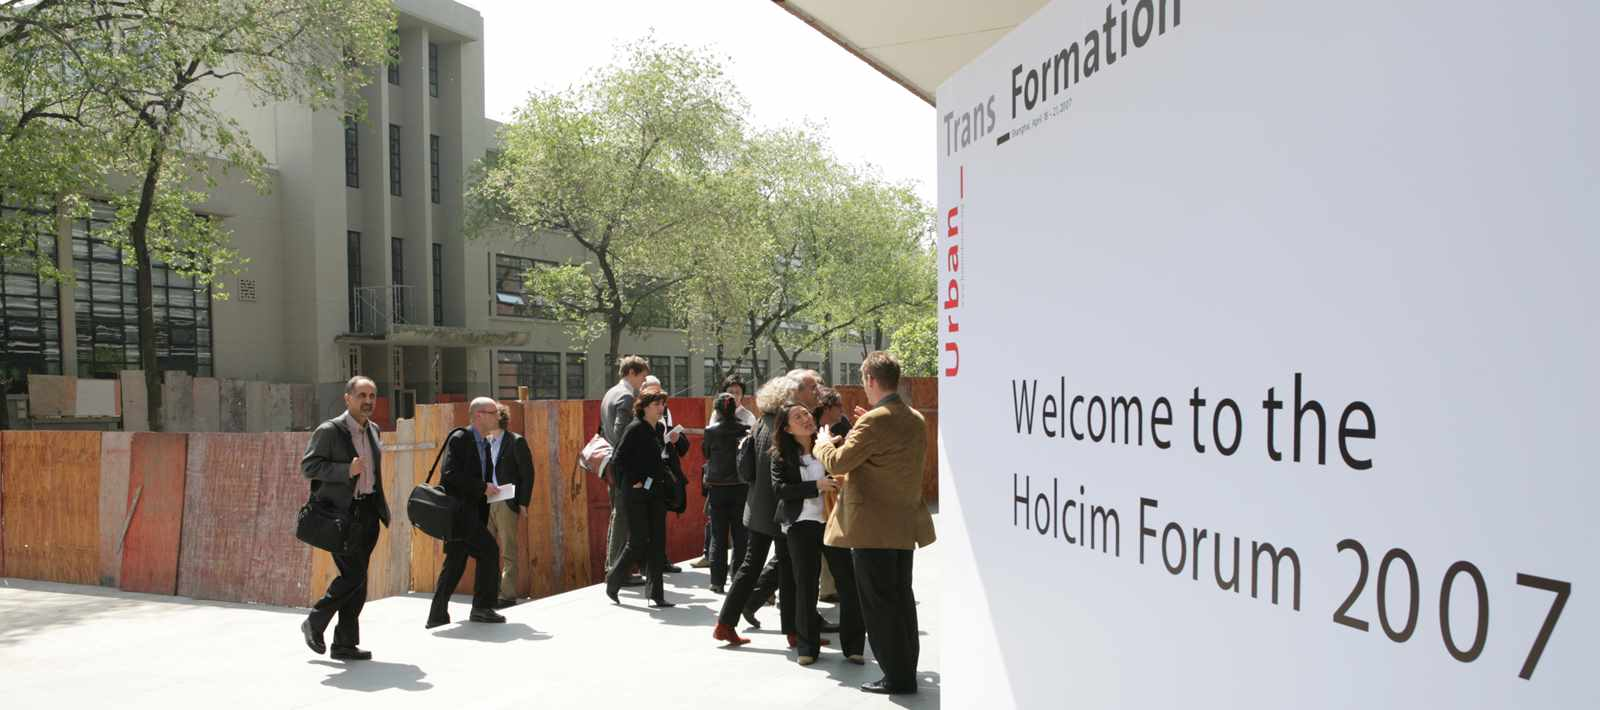 """Tongji University was host of the 2nd International Holcim Forum """"Urban_Trans_Formation"""" in 2007."""